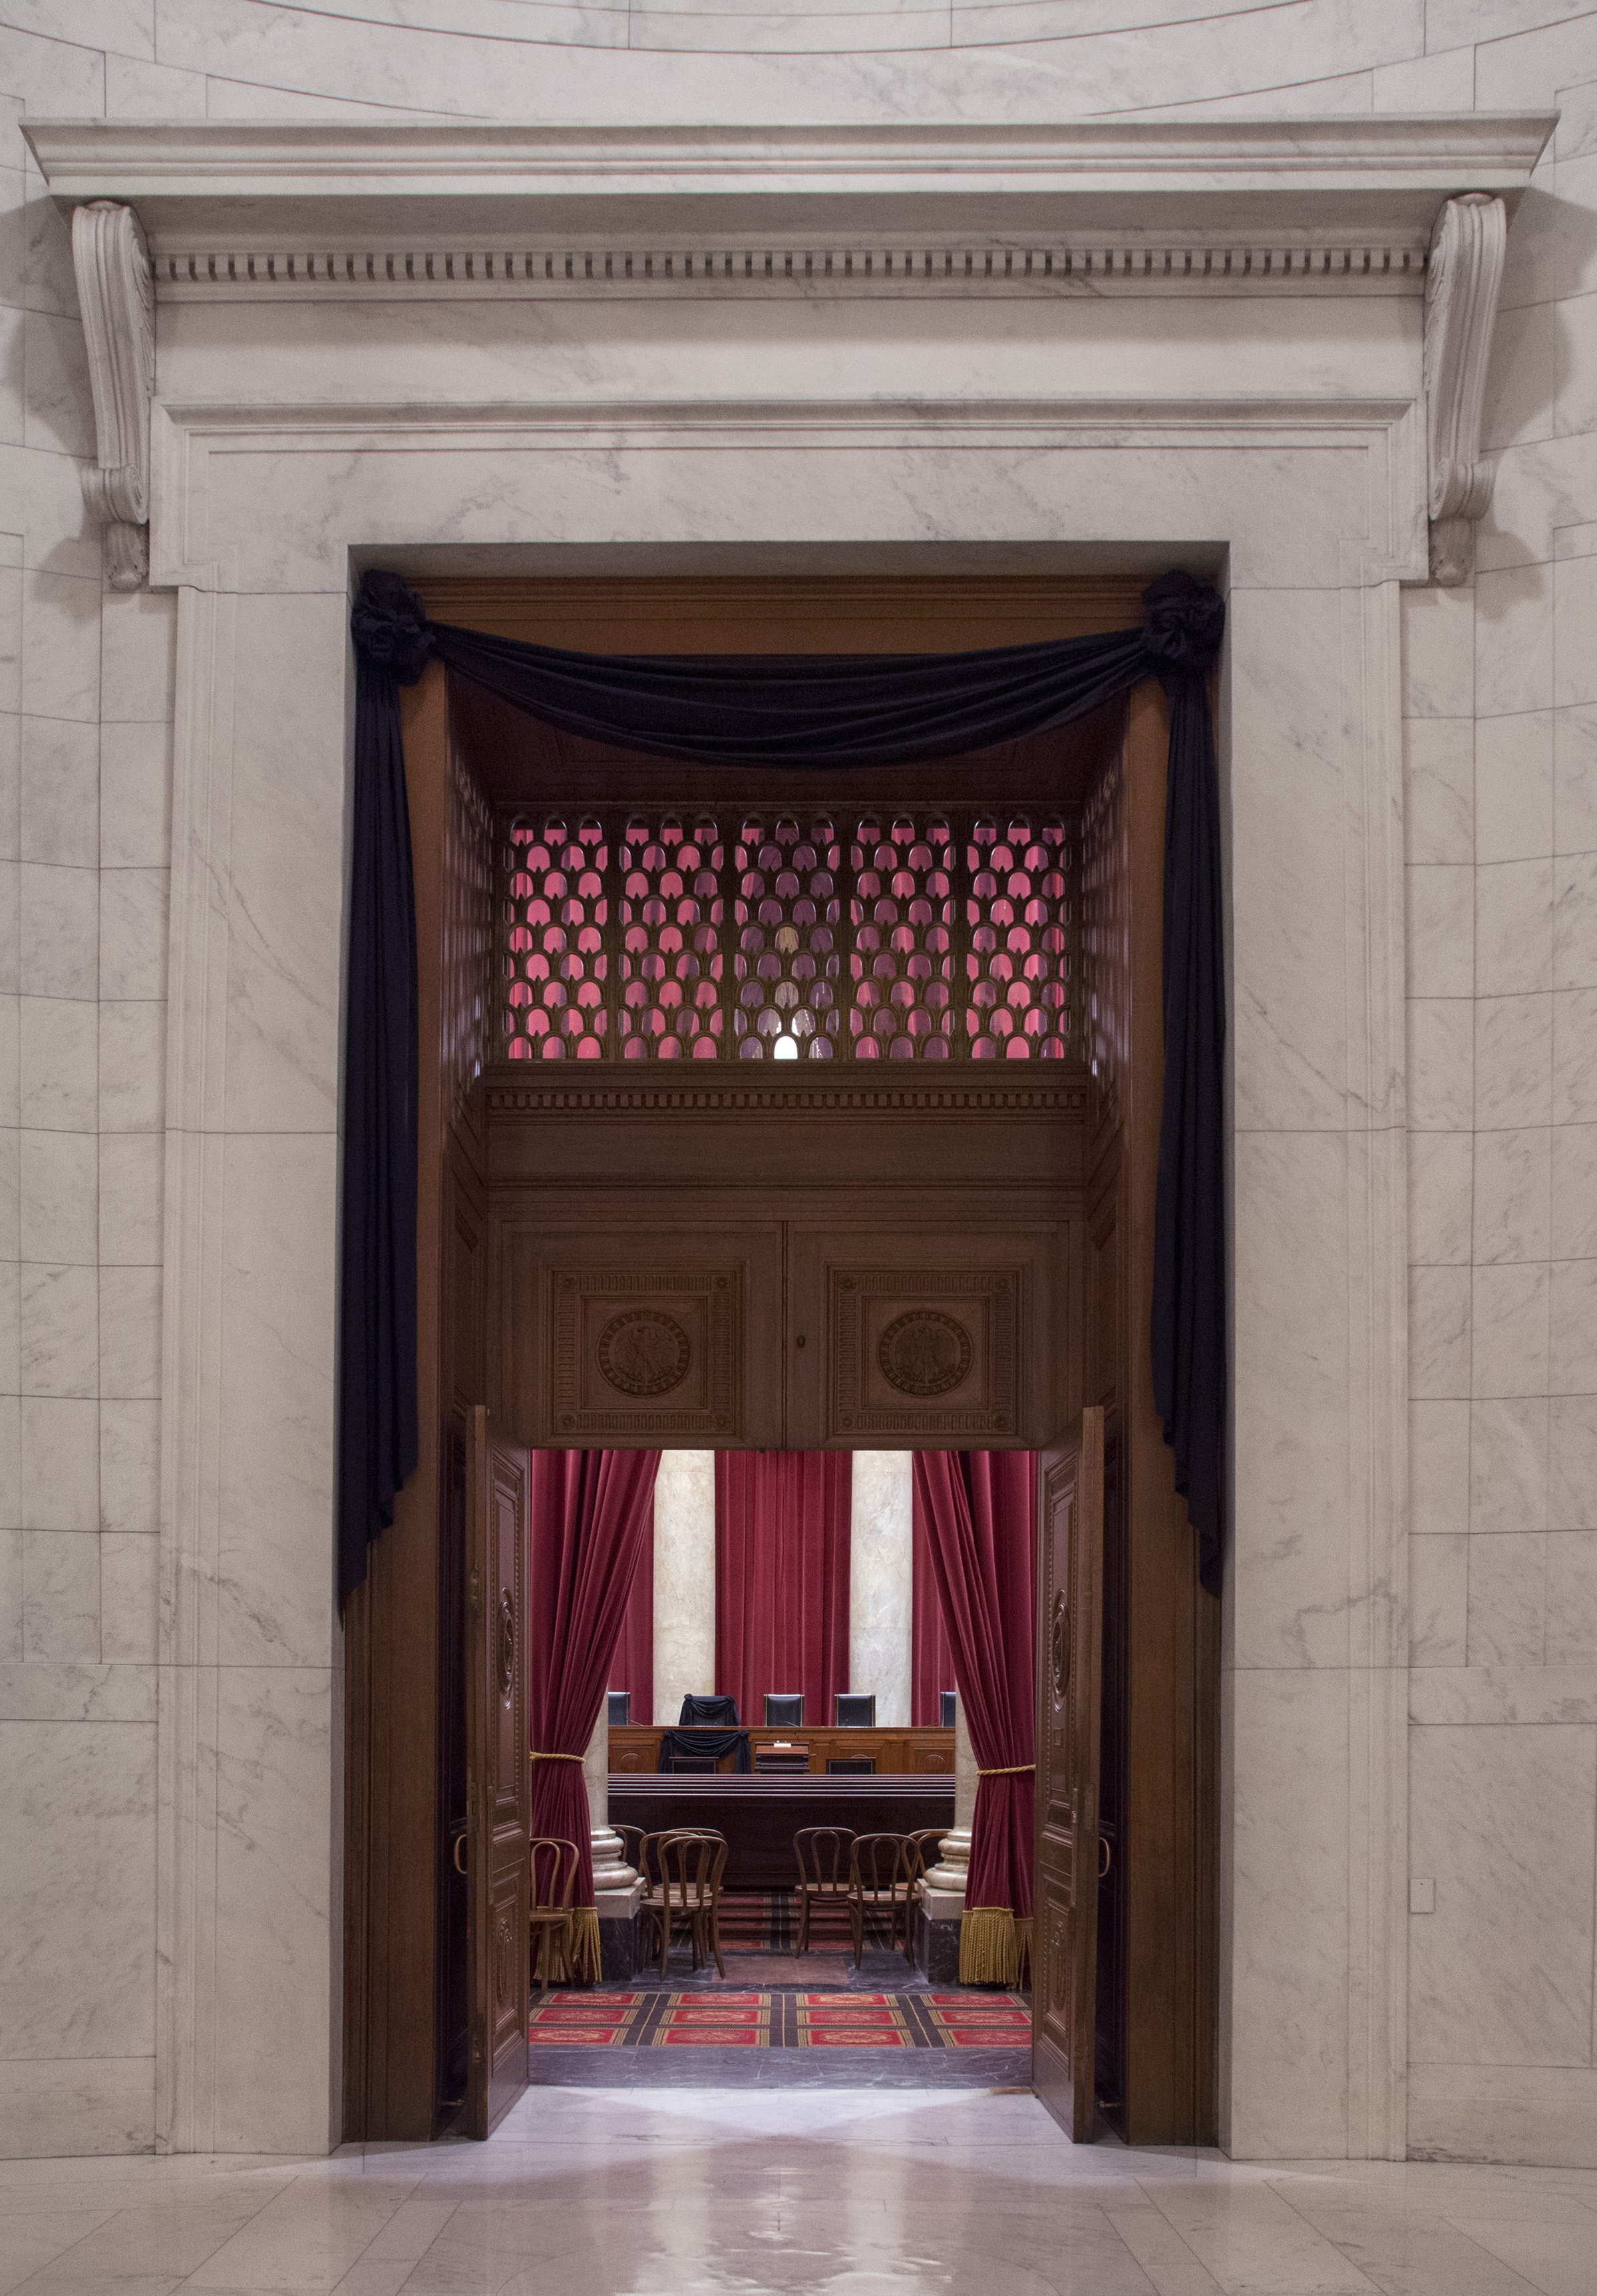 The Courtroom doors draped in black following the death of Supreme Court Associate Justice Antonin Scalia on February 13, 2016. Full credit: Franz Jantzen/Supreme Court of the United States